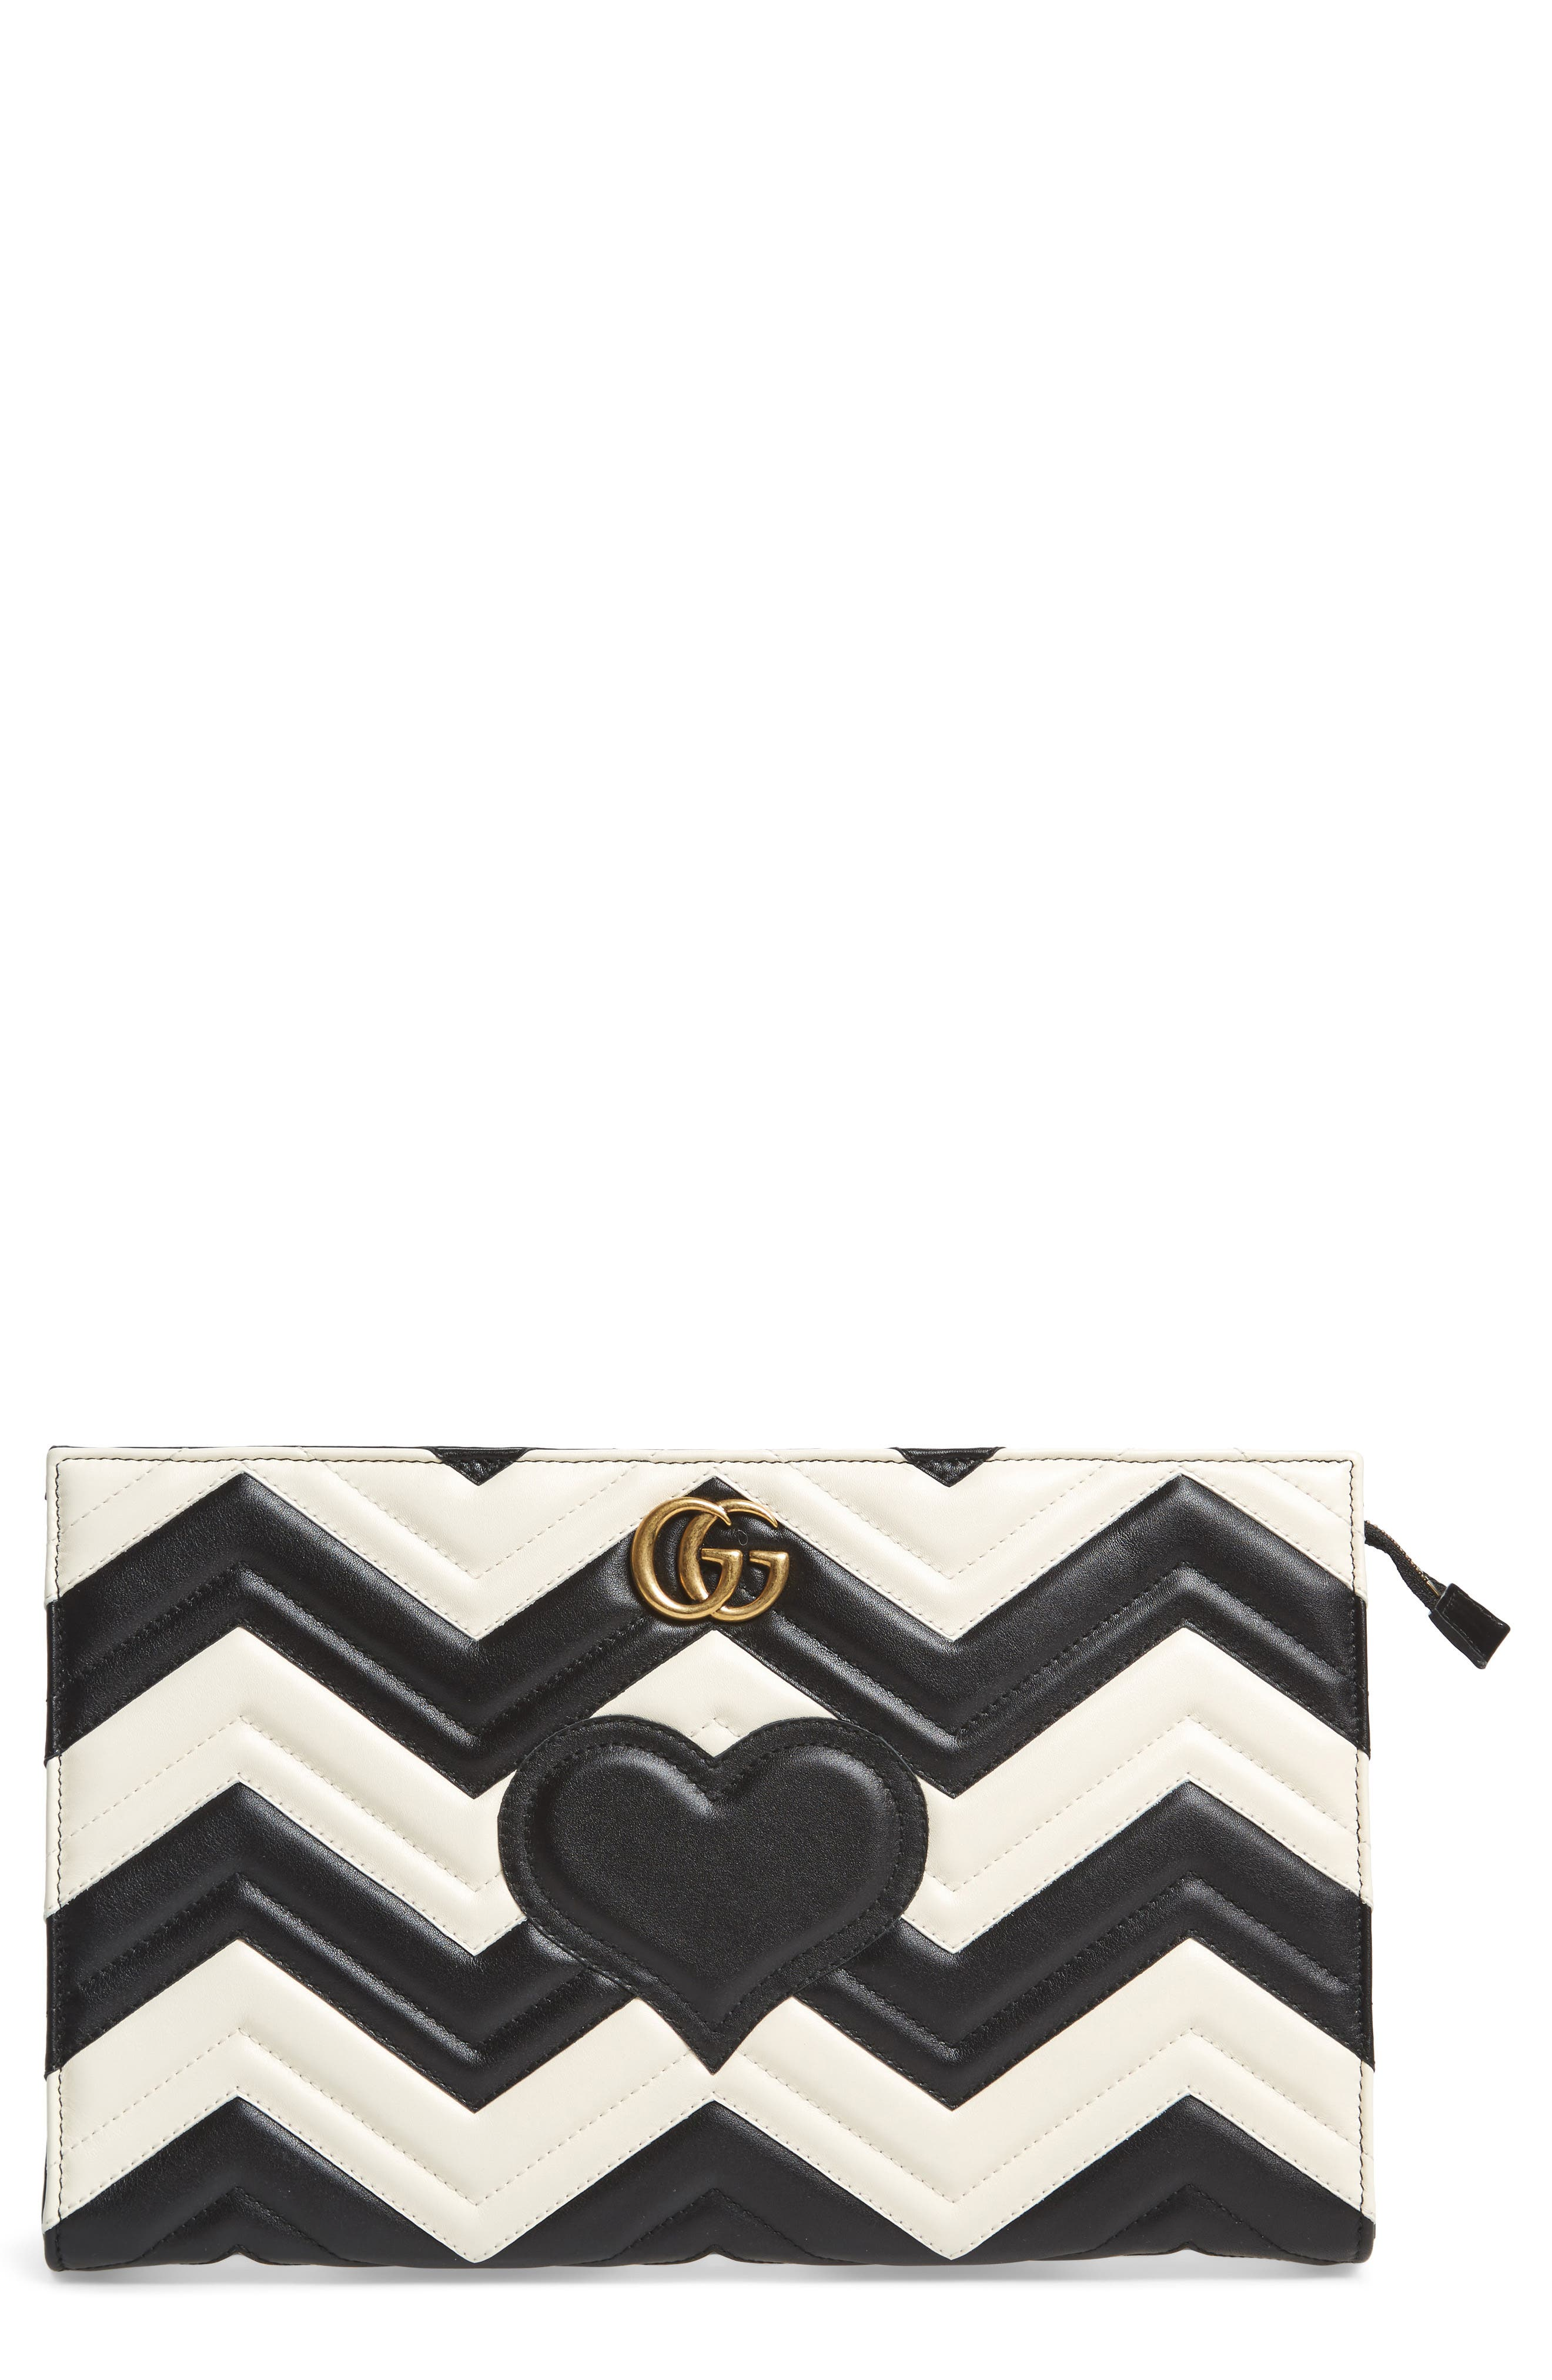 Alternate Image 1 Selected - Gucci GG Marmont Matelassé Leather Clutch